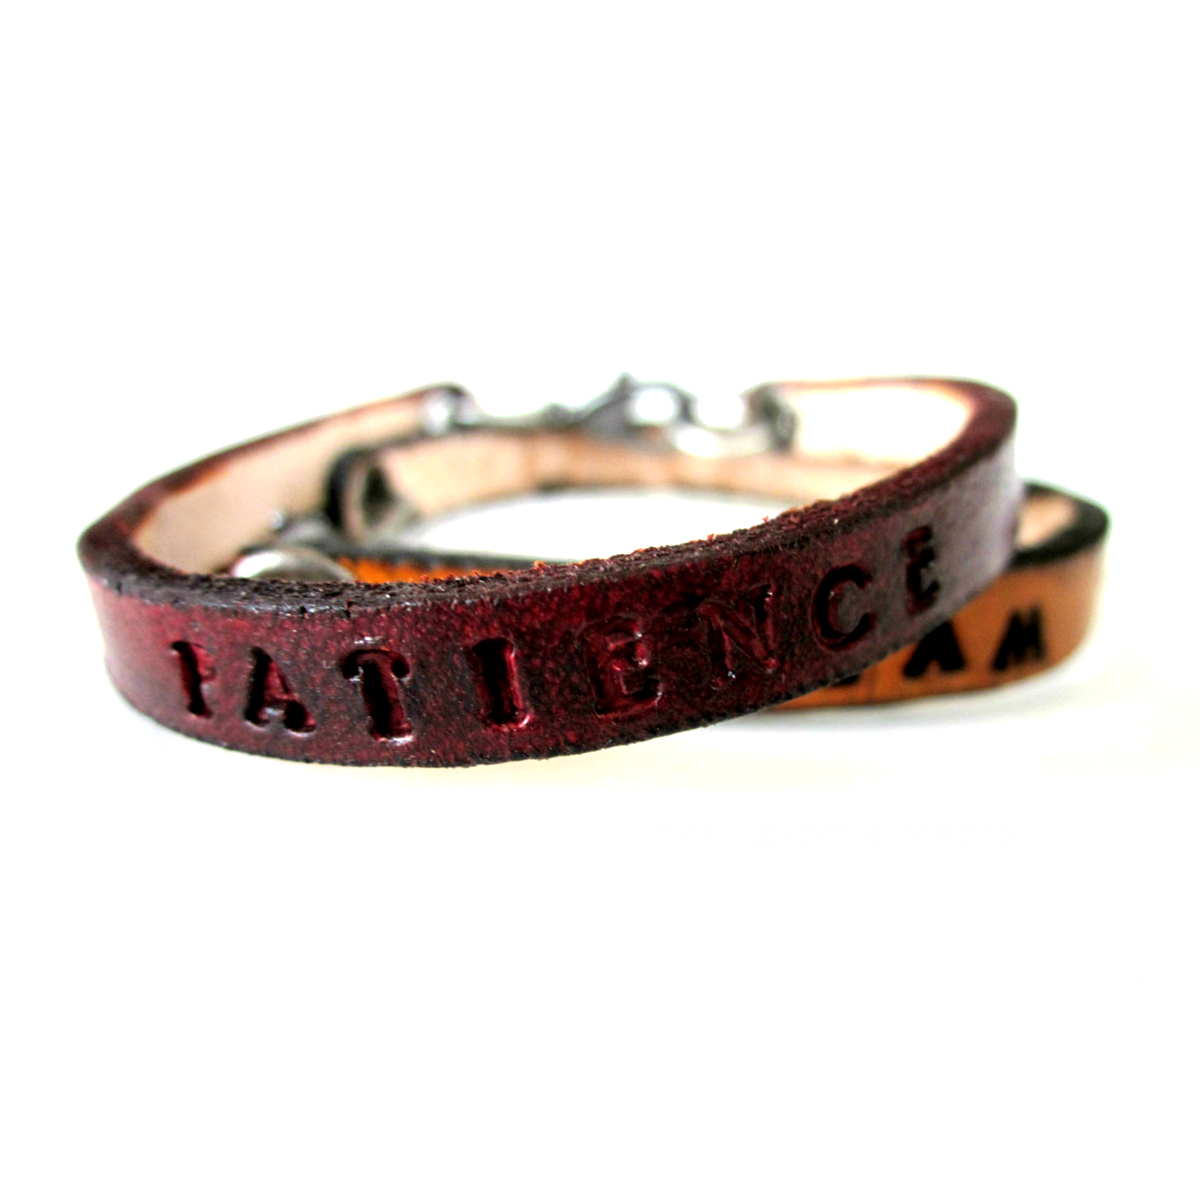 personalized-thin-leather-bracelet-the-leather-smithy_1